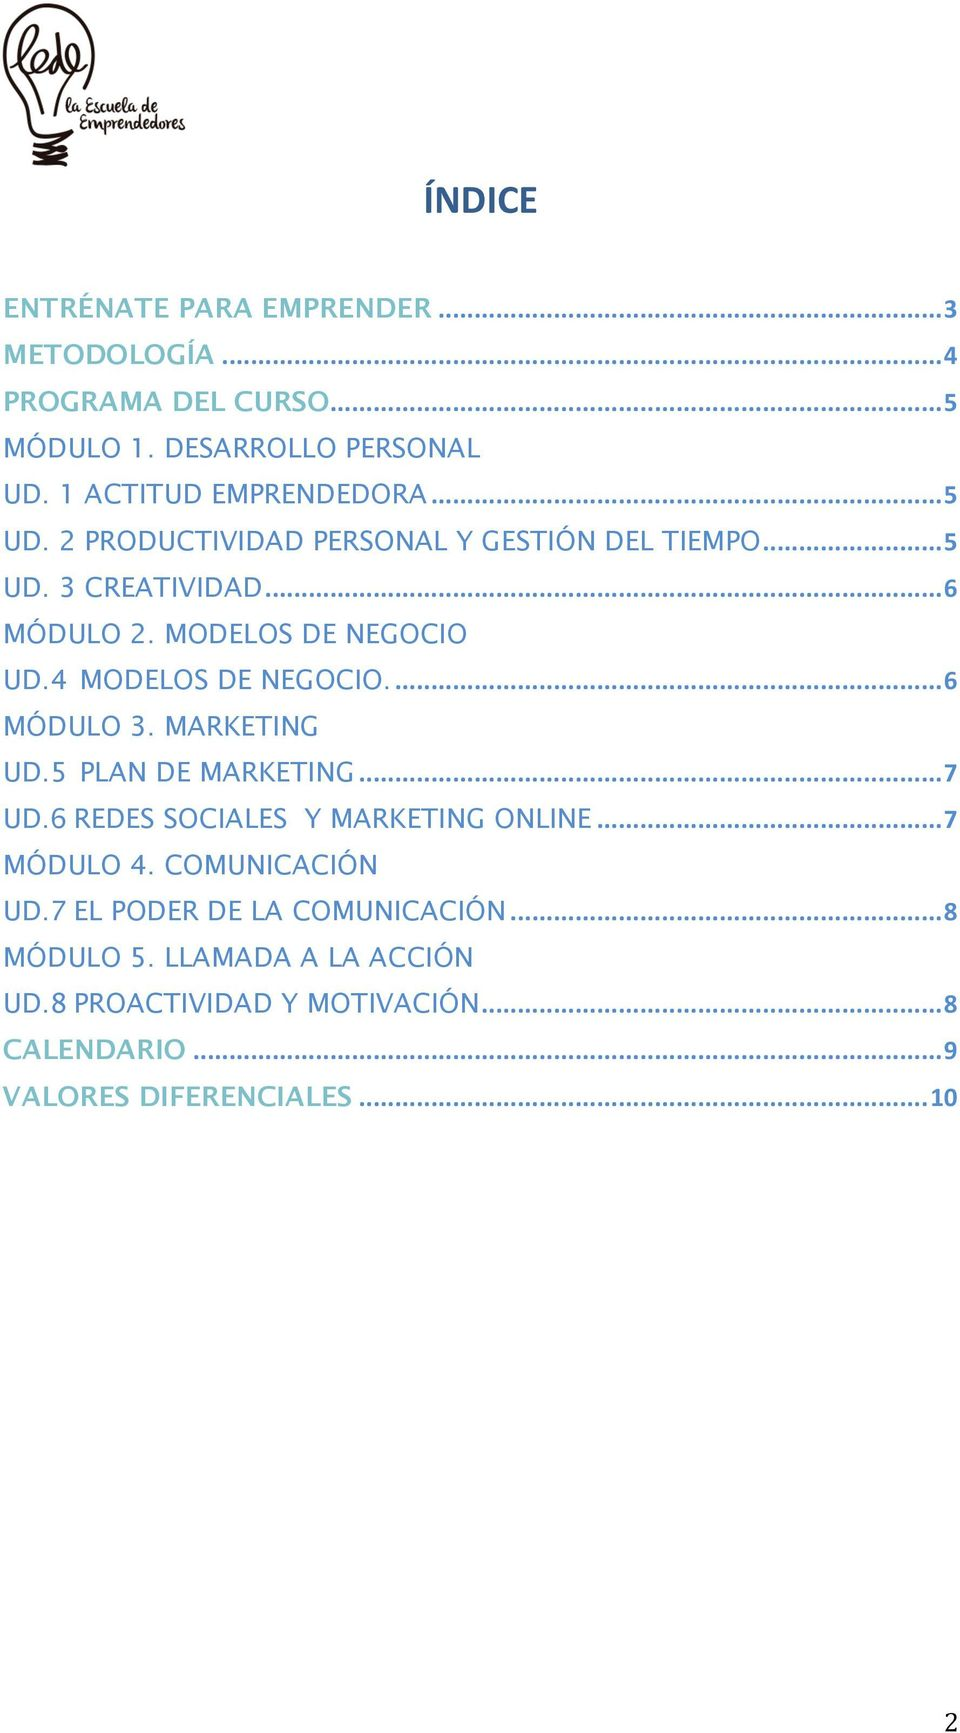 ... 6 MÓDULO 3. MARKETING UD.5 PLAN DE MARKETING... 7 UD.6 REDES SOCIALES Y MARKETING ONLINE... 7 MÓDULO 4. COMUNICACIÓN UD.